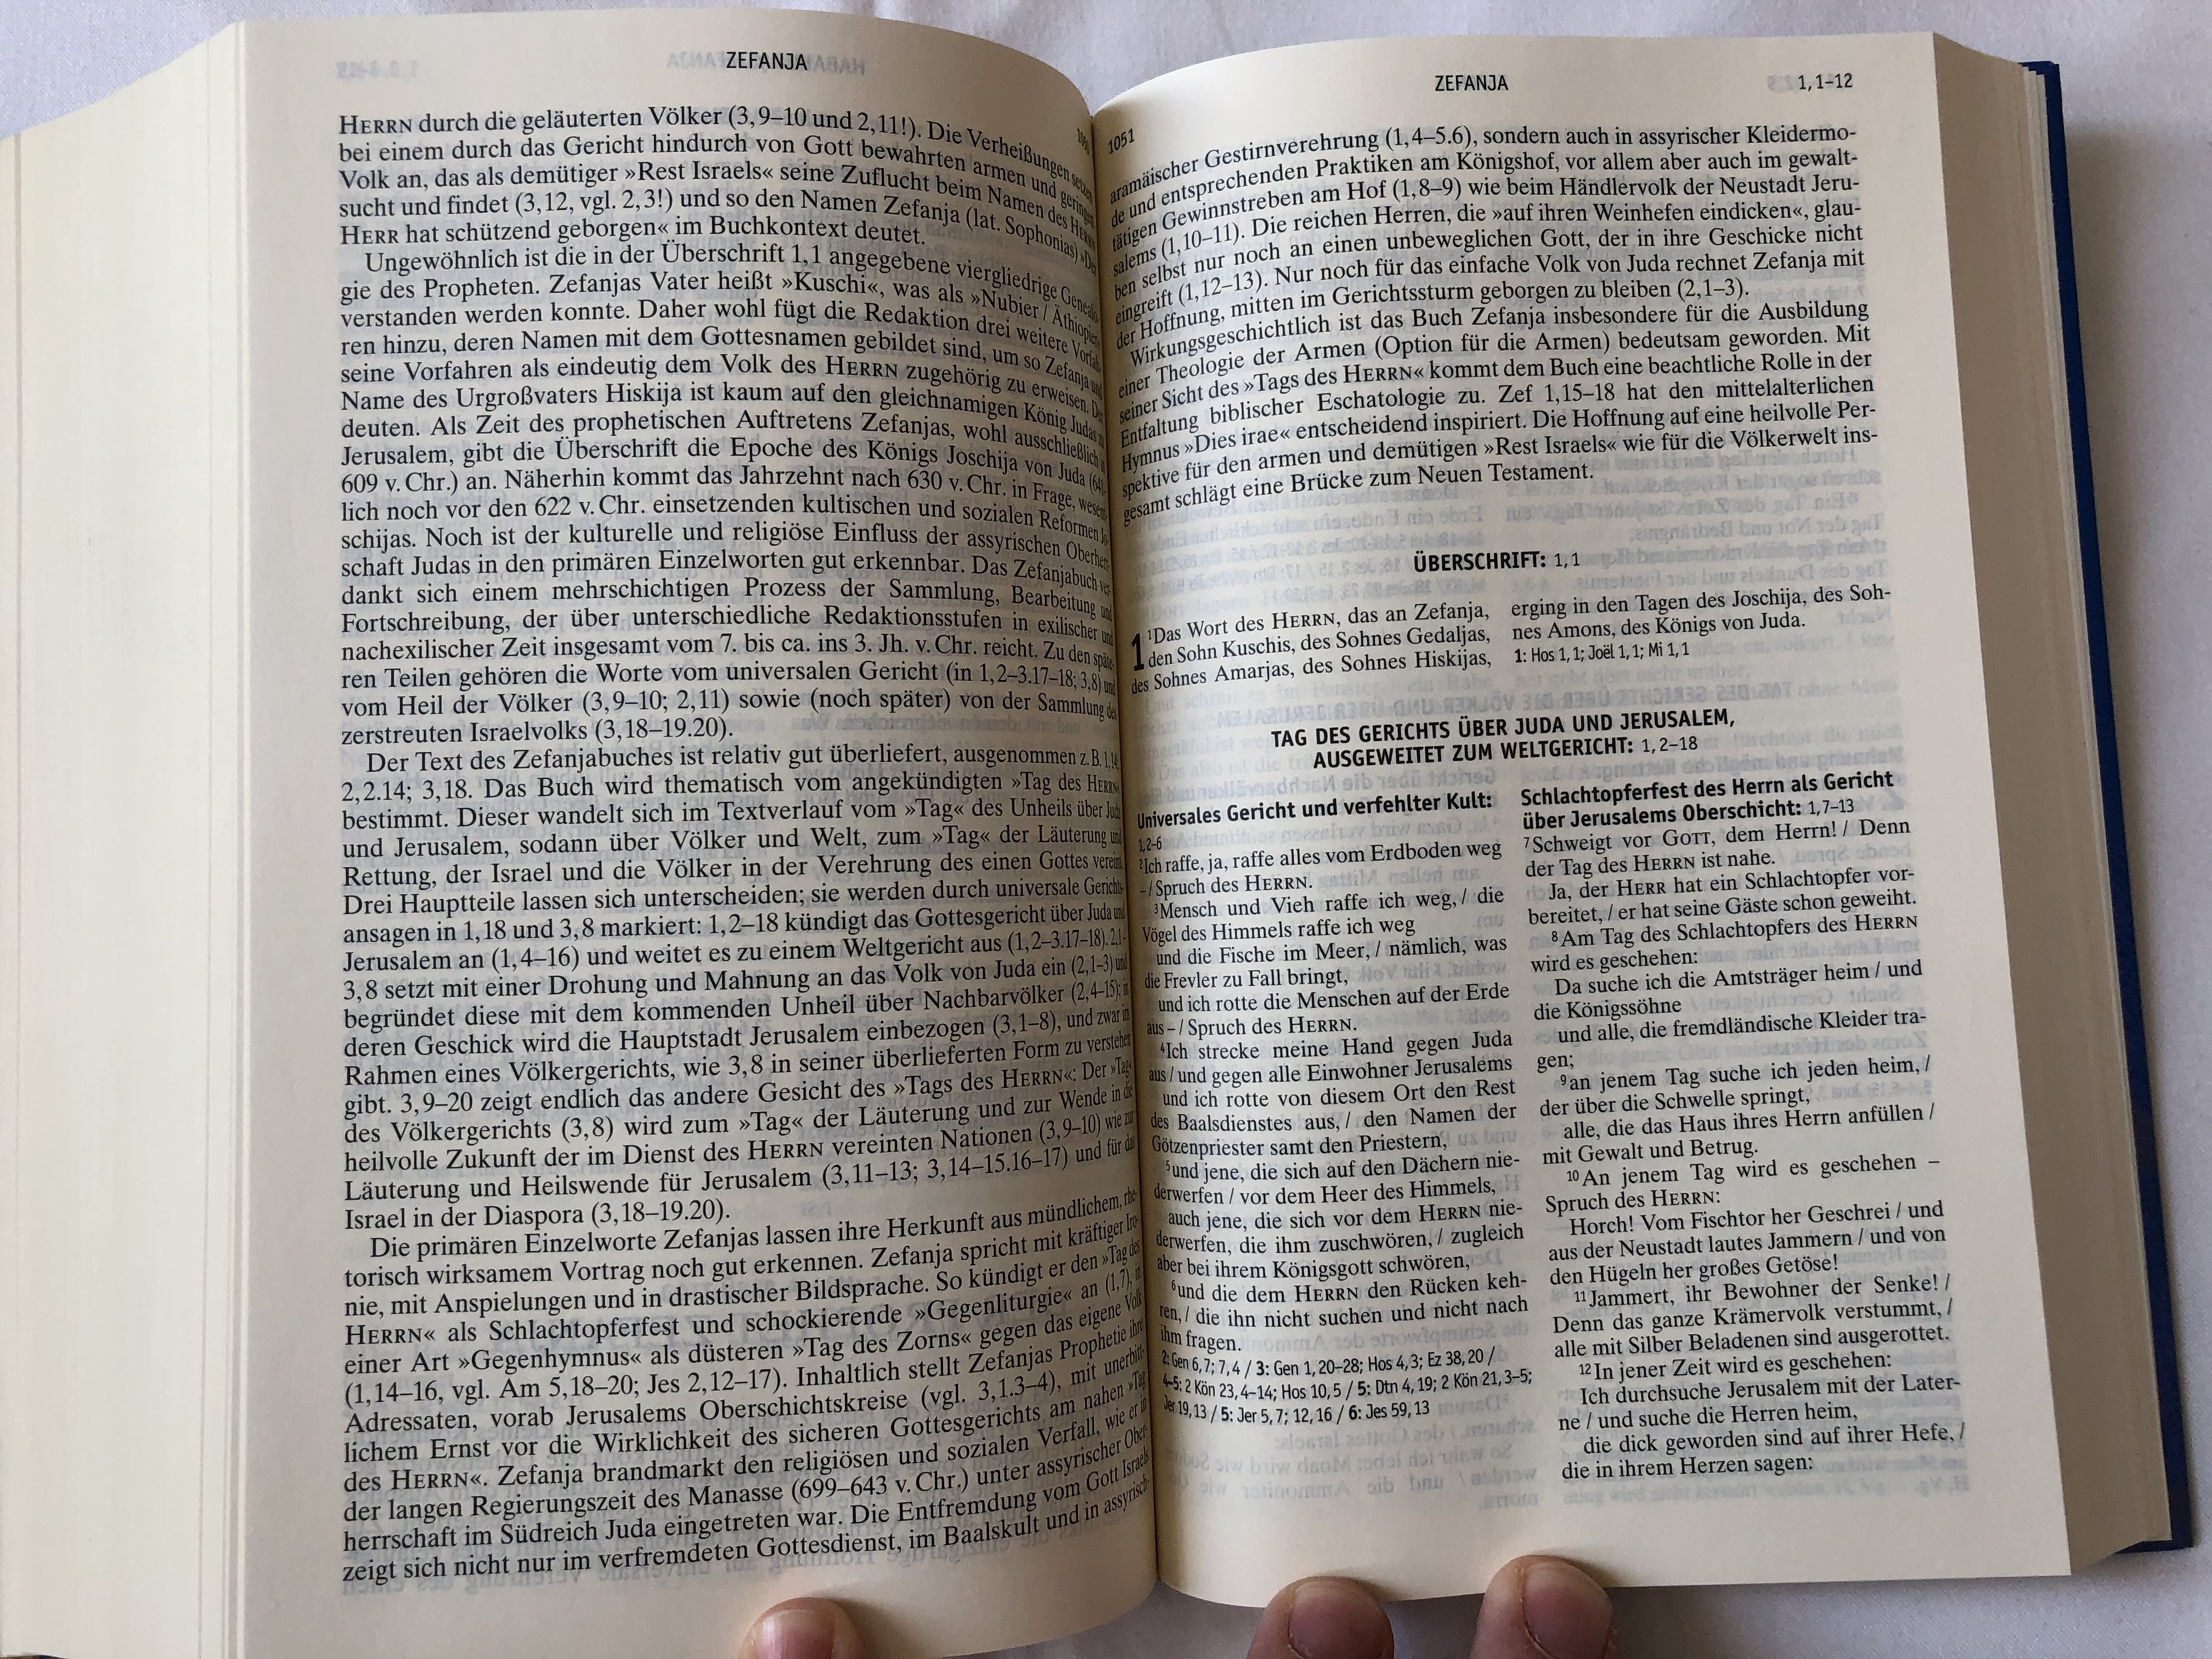 die-bibel-einheits-bersetzung-altes-und-neues-testament-german-language-holy-bible-unitary-translation-contains-deuterocanonical-books-with-book-introductions-maps-notes-bible-history-timetable-hardcover-2016-herde-7471217-.jpg